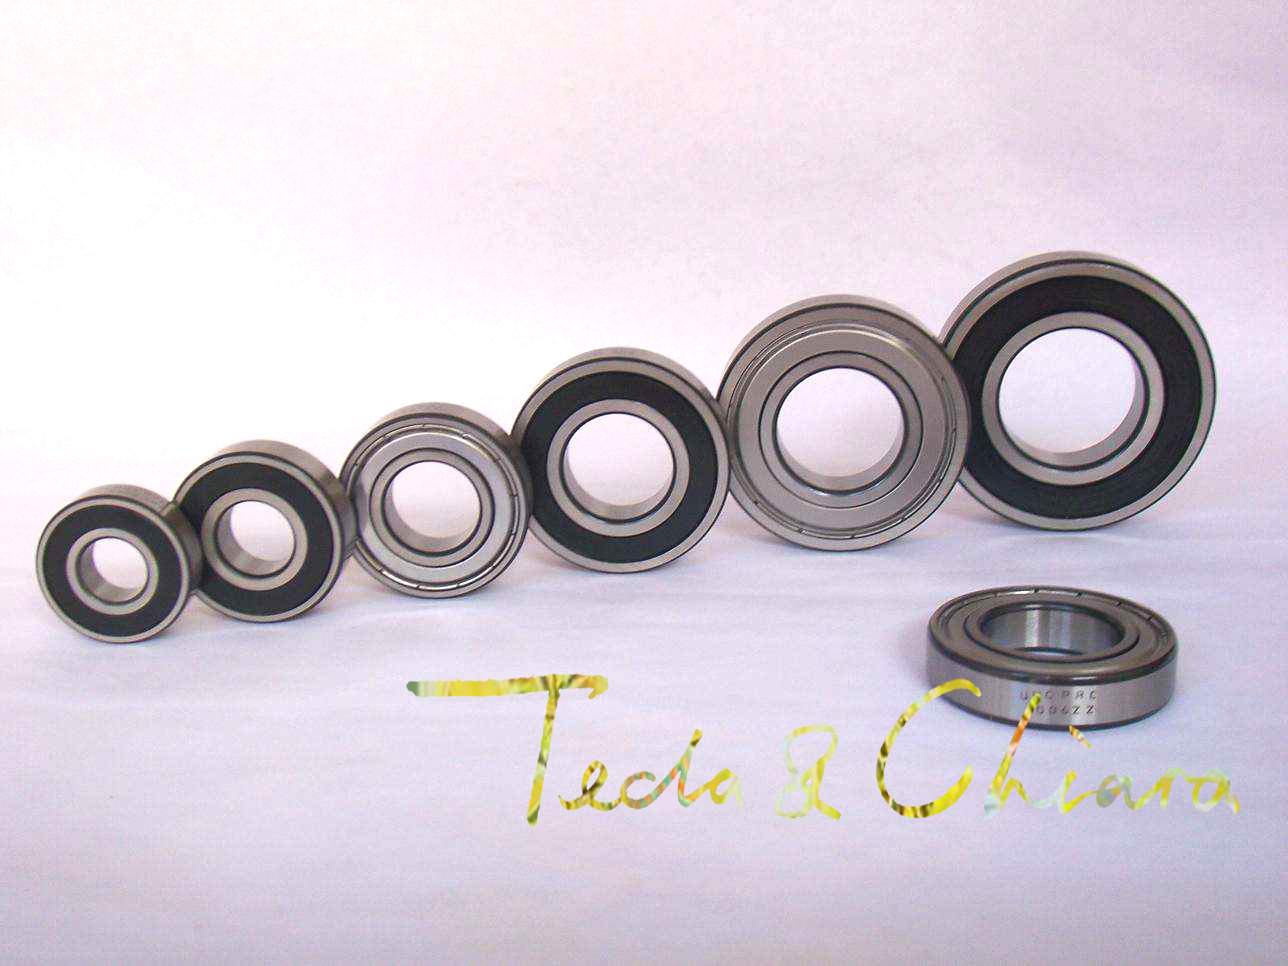 6203 6203ZZ 6203RS 6203-2Z 6203Z 6203-2RS ZZ RS RZ 2RZ Deep Groove Ball Bearings 17 x 40 x 12mm High Quality gcr15 6328 zz or 6328 2rs 140x300x62mm high precision deep groove ball bearings abec 1 p0